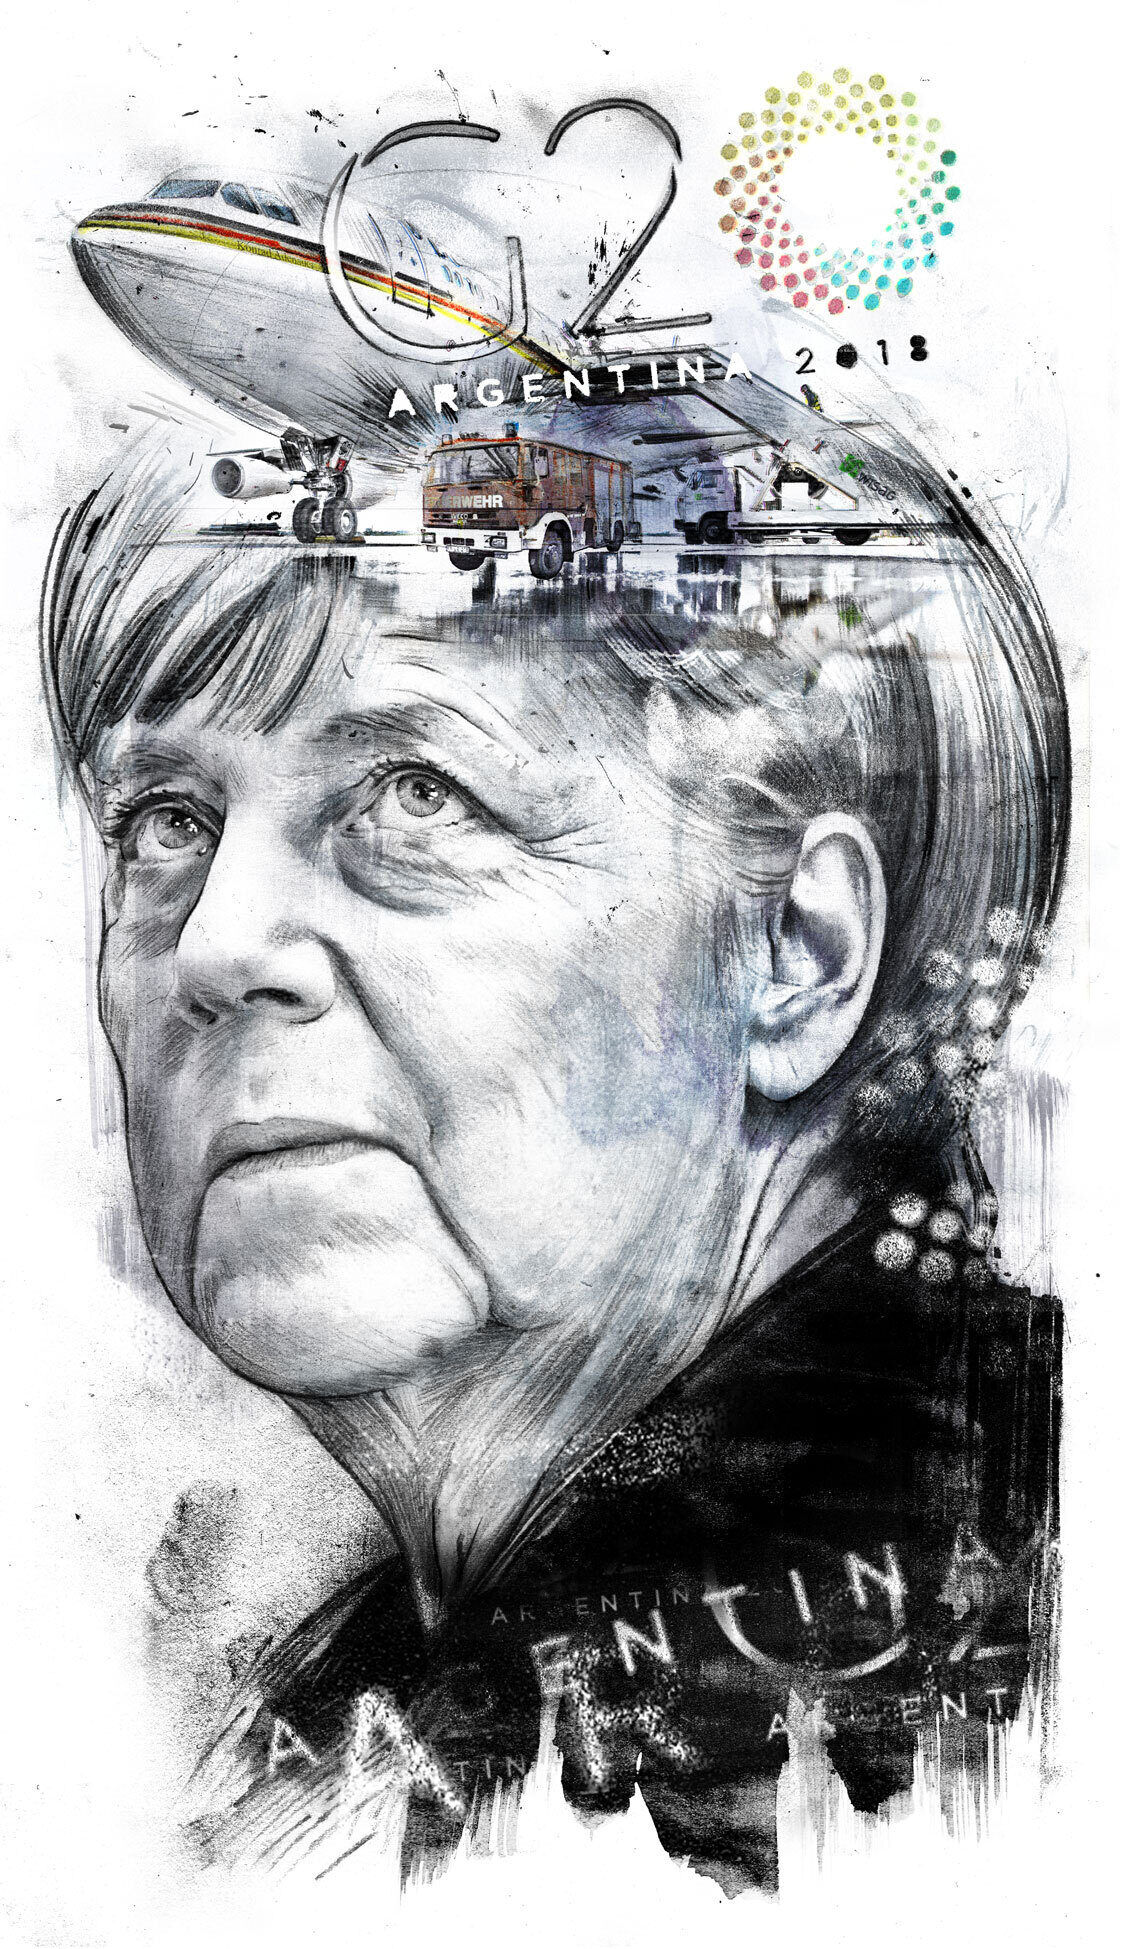 G 20 Merkel editorial illustration - Kornel Illustration | Kornel Stadler portfolio